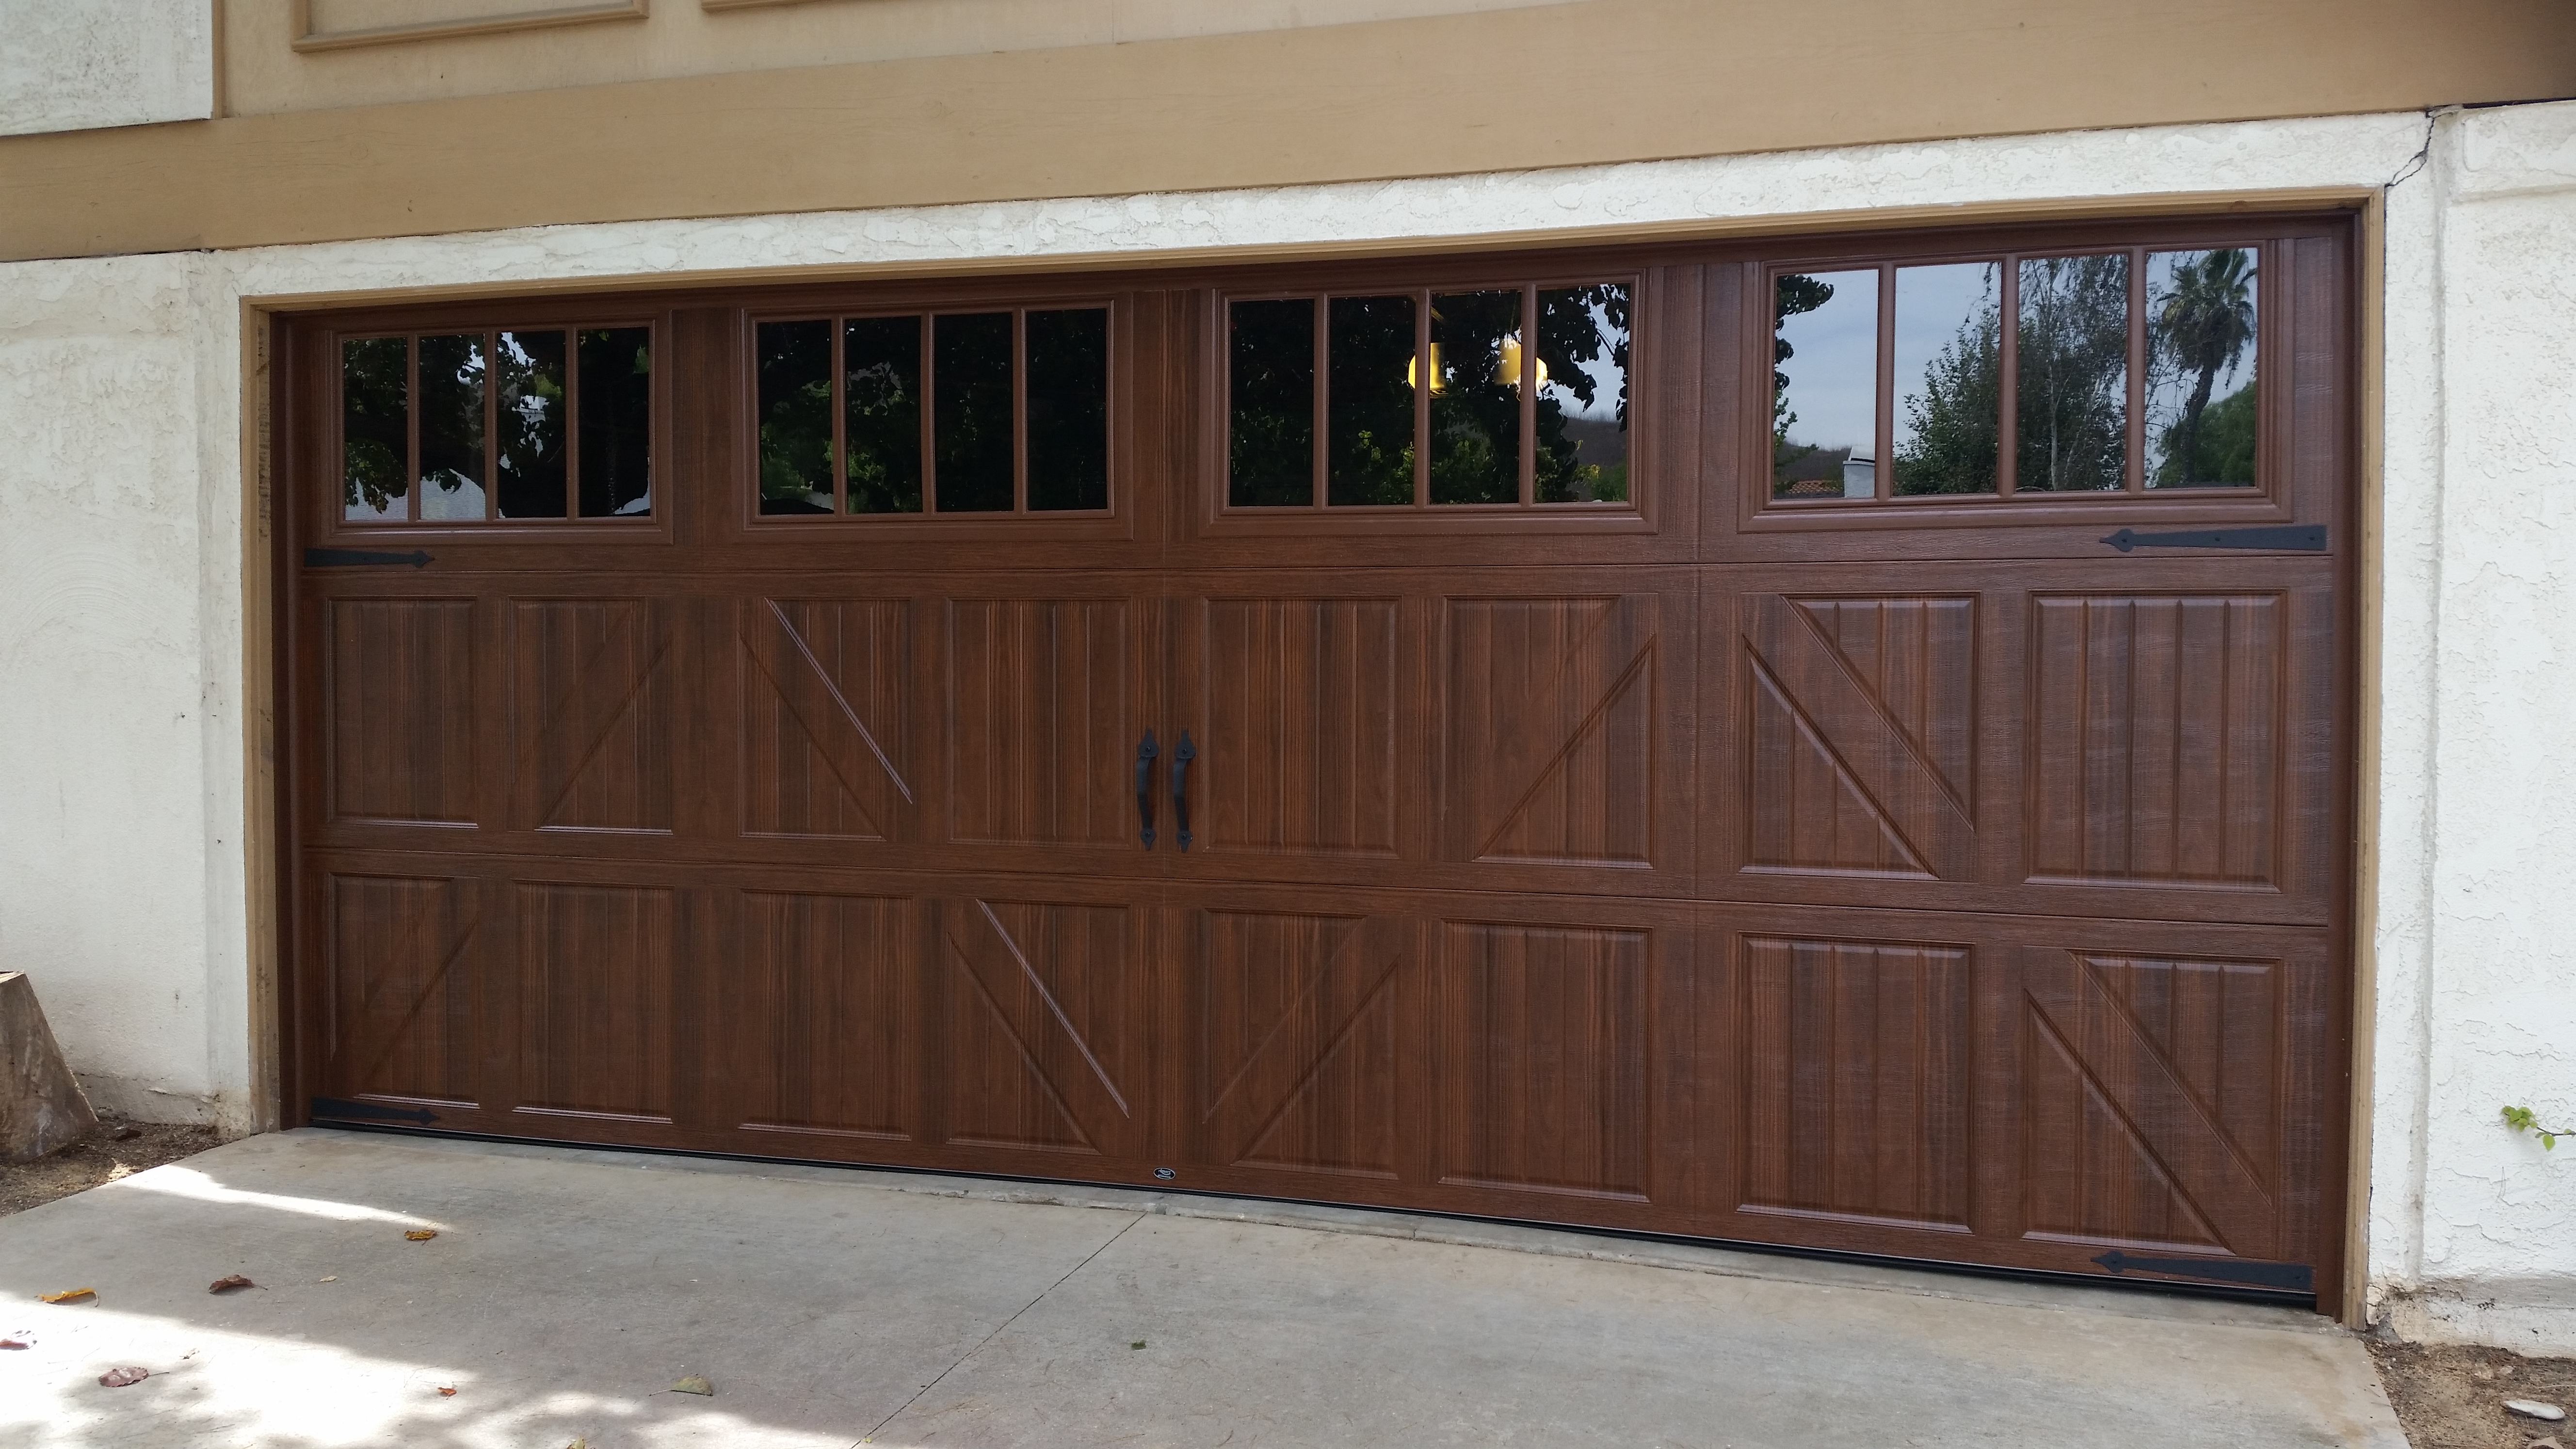 We got wood tones avaliable we cover ventura county and santa clarita valley with repair installatin and service of both garage doors and openers let us know how we can help rubansaba